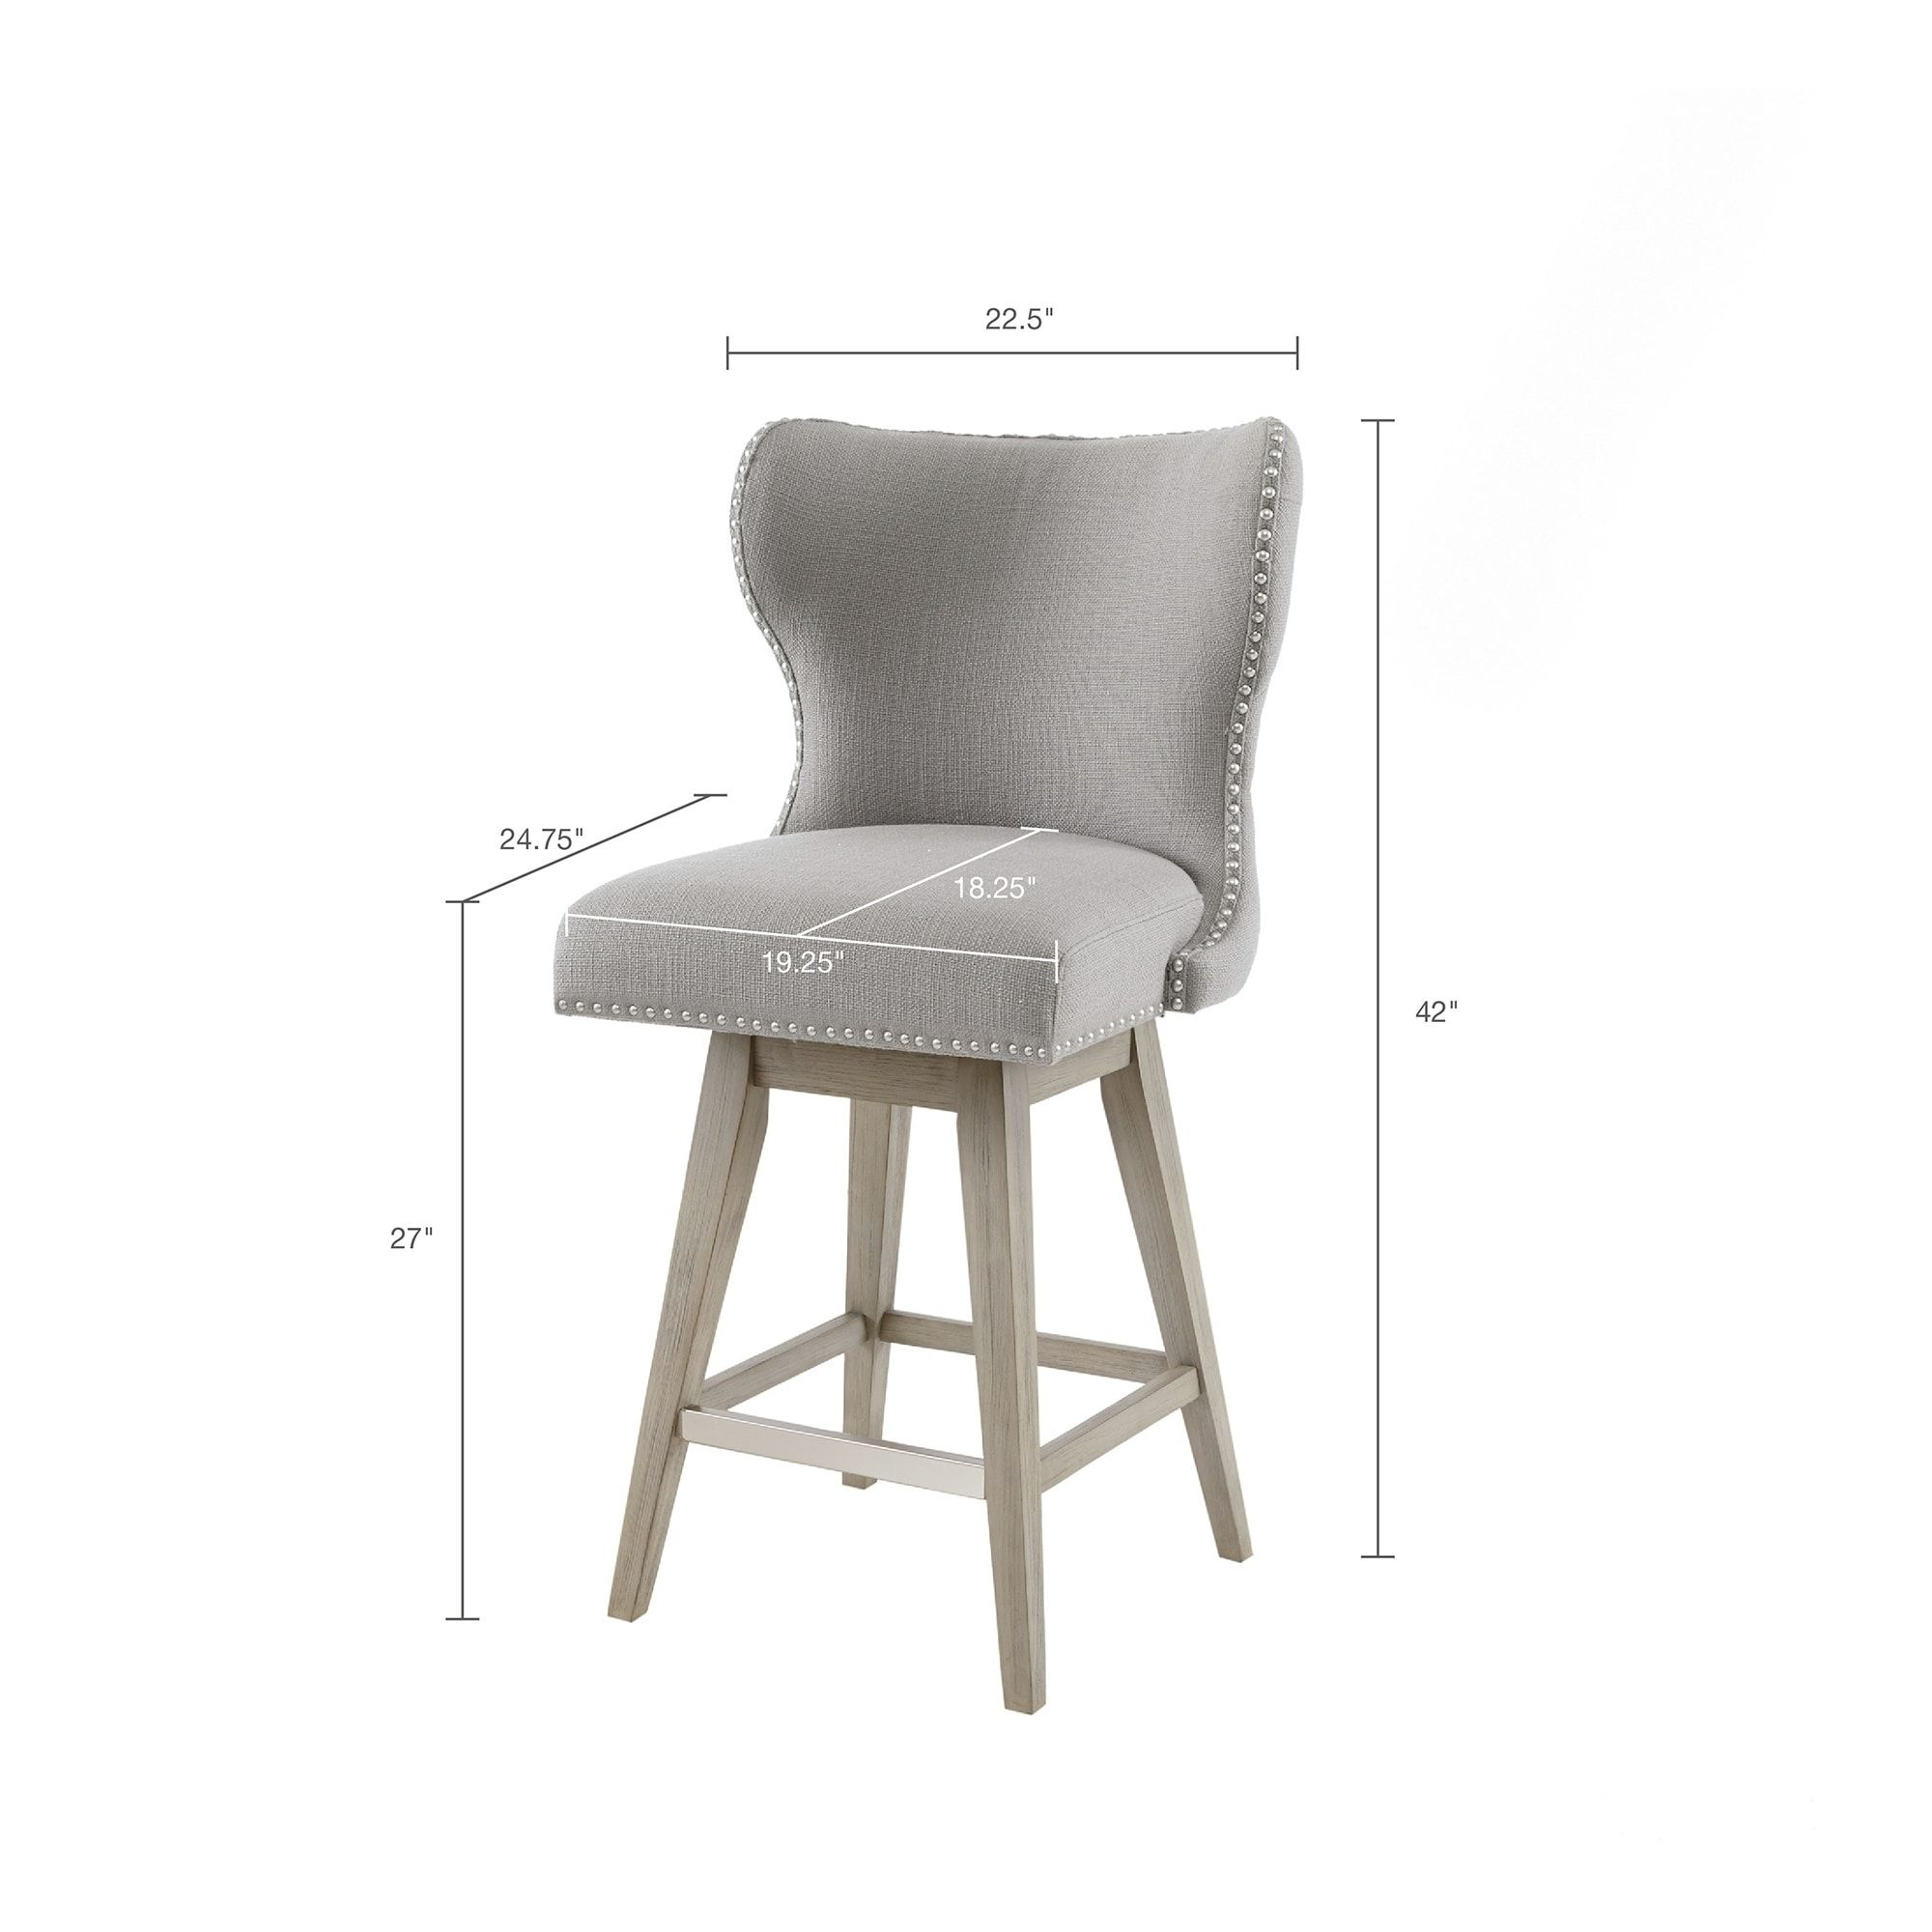 Swell Madison Park Irvine High Wingback Button Tufted Upholstered Machost Co Dining Chair Design Ideas Machostcouk